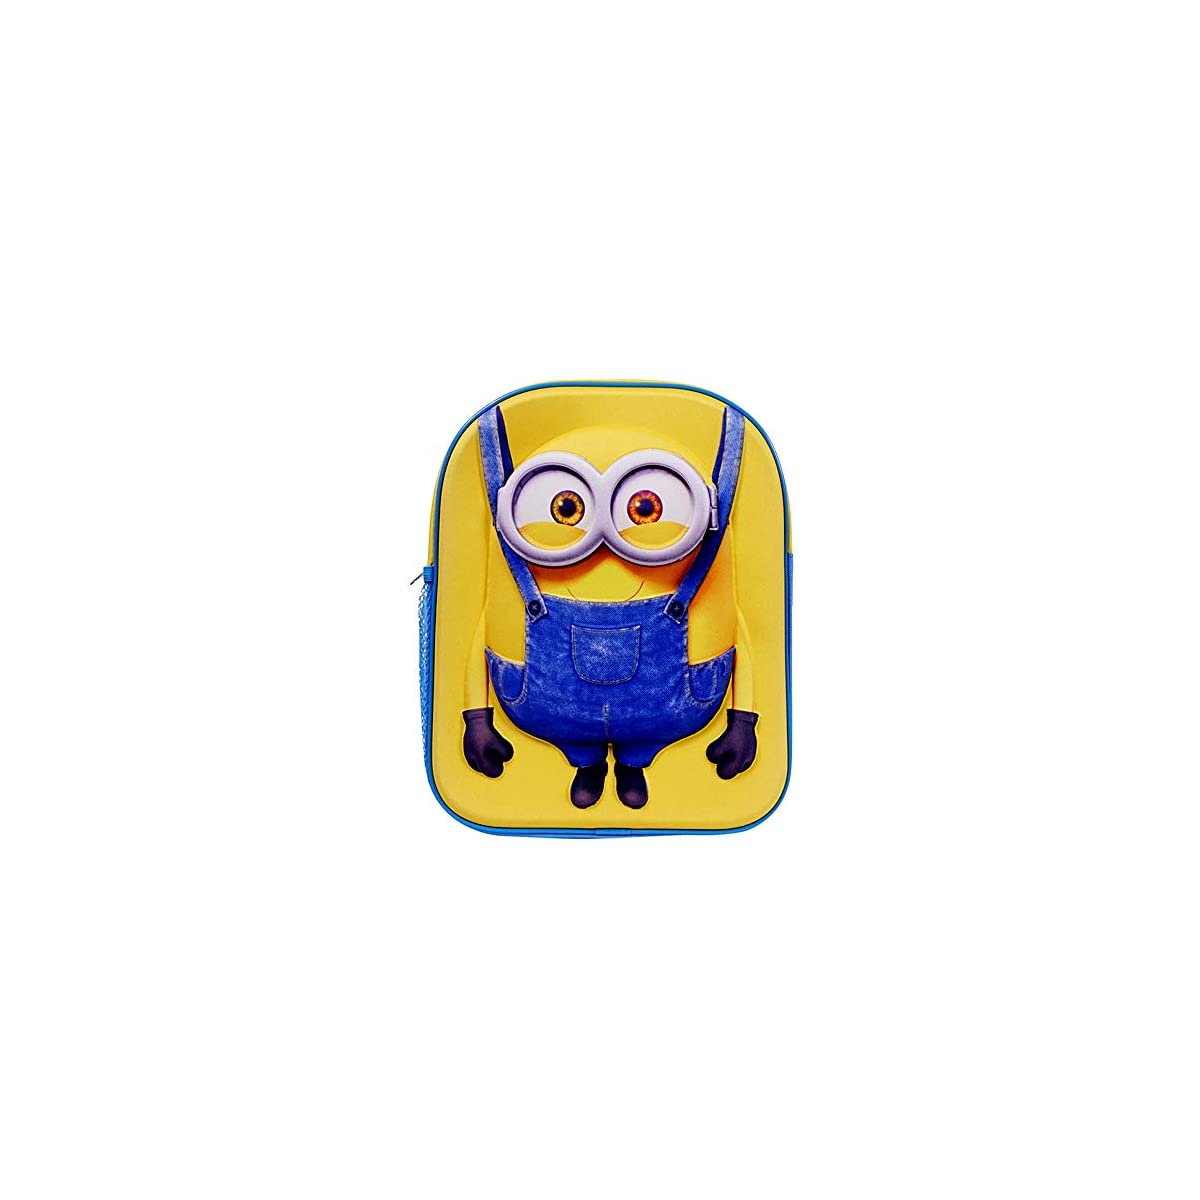 51WzqZY ufL. SS1200  - Despicable Me Minion 3D Backpack